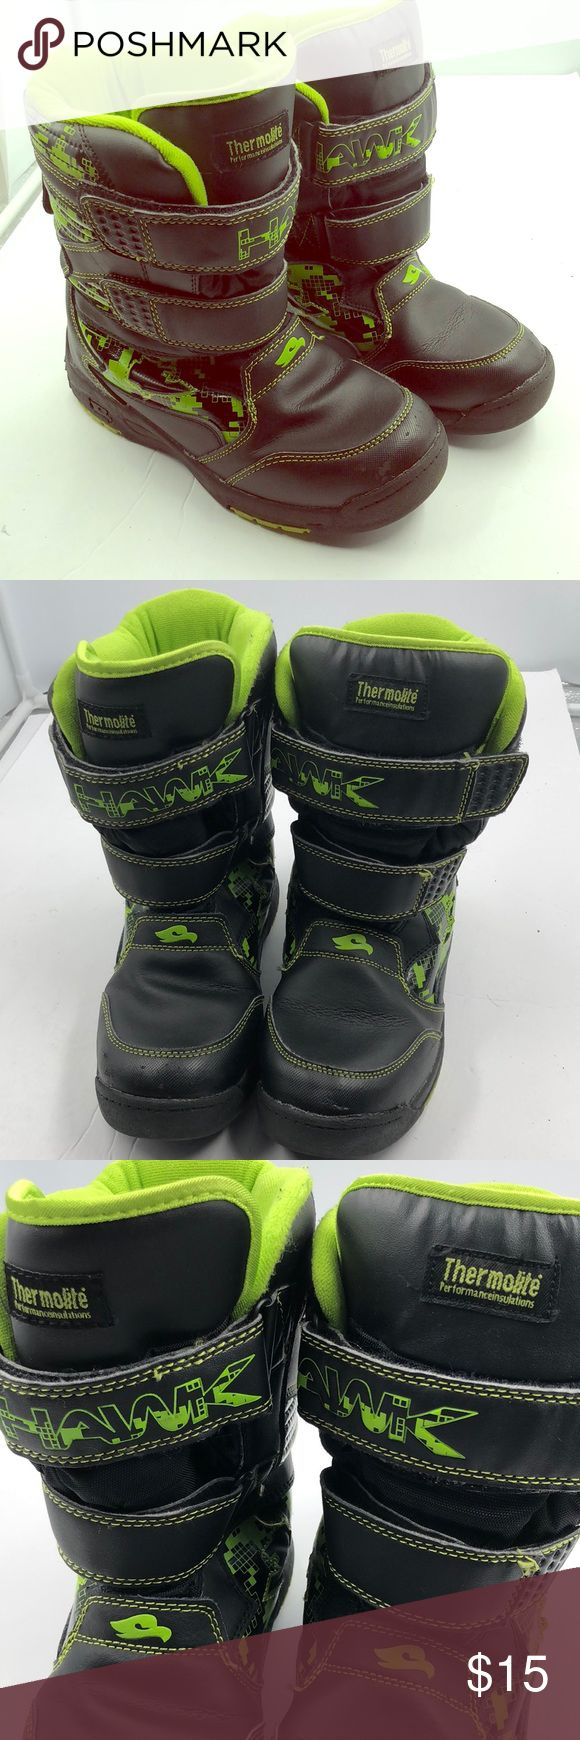 Tong Hawk black Neon Winter Boots 4 4Y Very cool Tony Hawk black and neon green winter boots.  Double velcro closures.  Thermolite performance insulation.  Big boy's size 4.  Bundle discount.  Fast shipping. Tony Hawk Shoes Boots